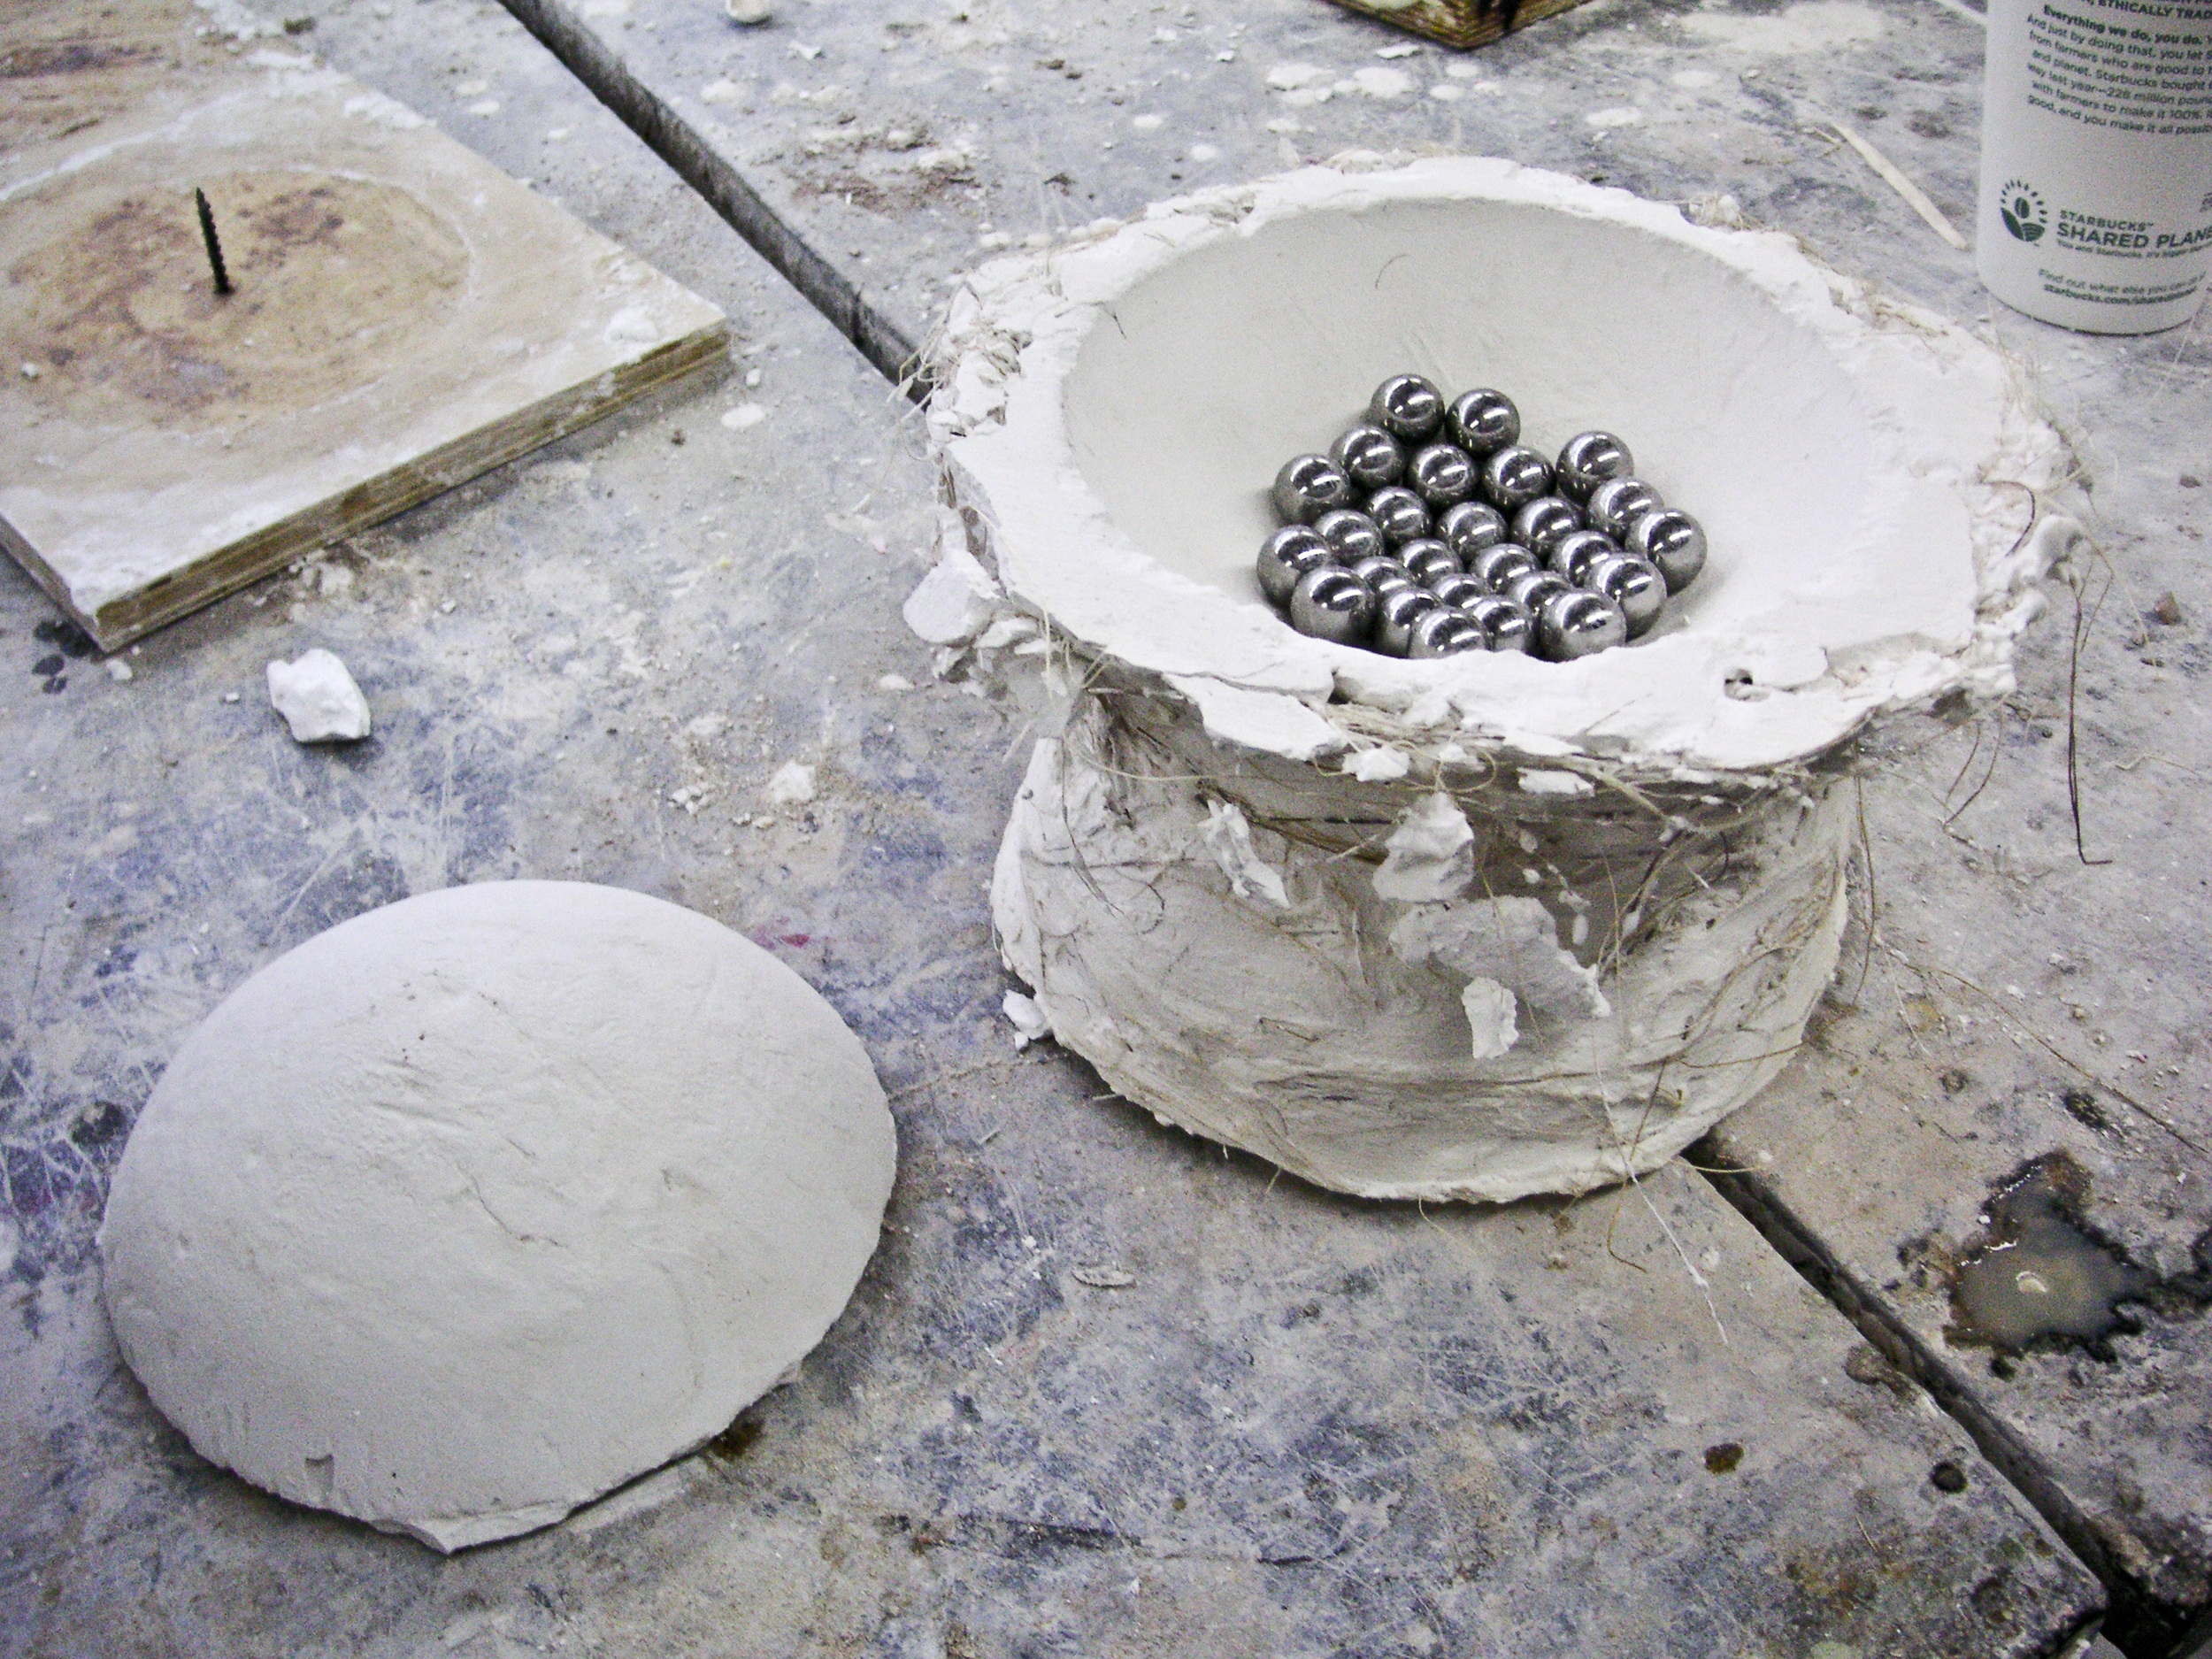 I used ball bearings in the base to create the consistency and fluidity of motion found in nesting bowls.